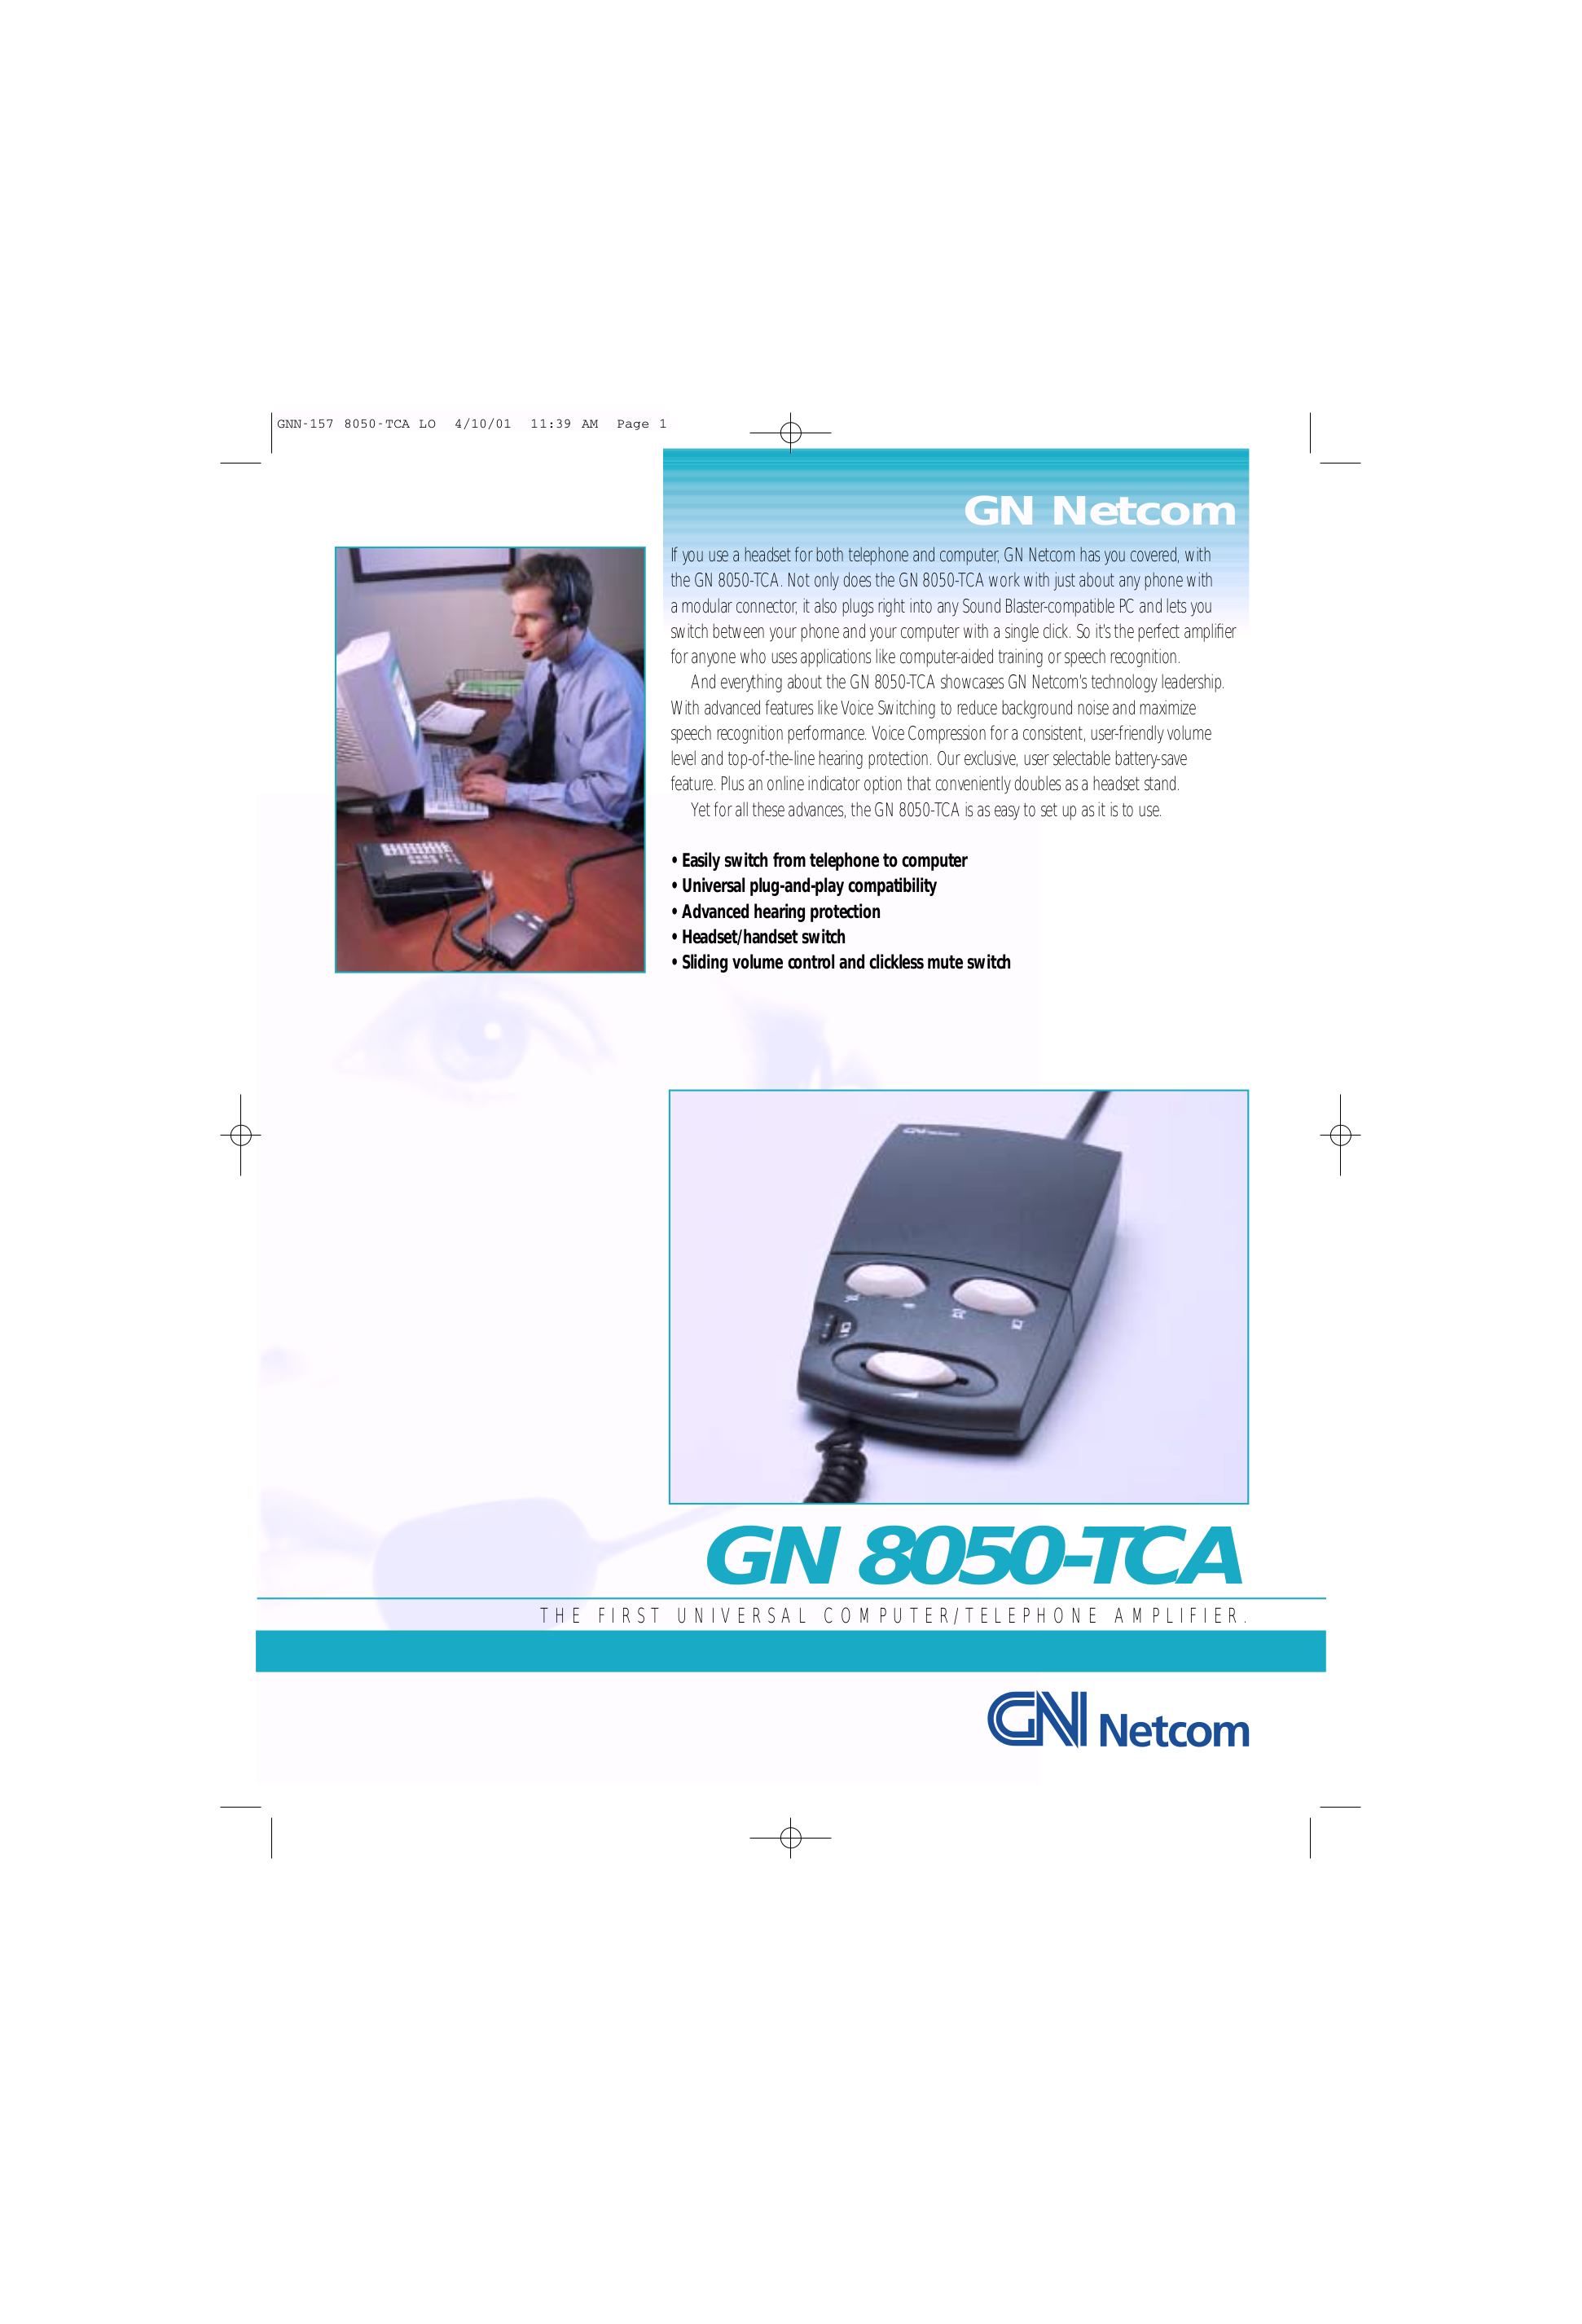 pdf for Jabra Other GN 8050 TCA Telephone Amps manual